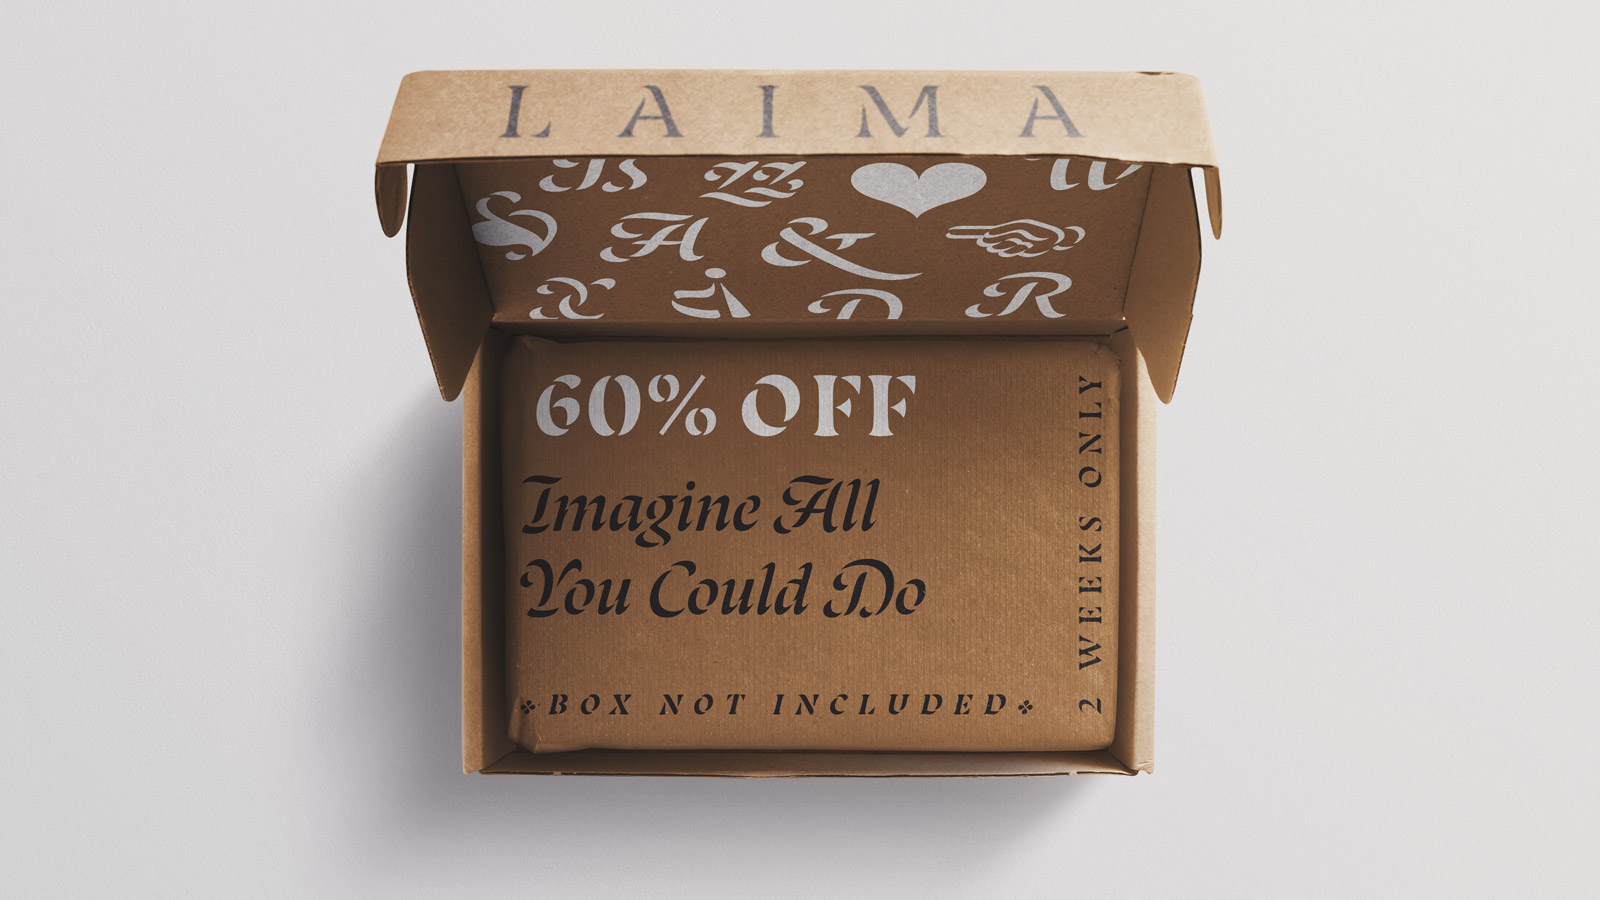 Laima black in progress, awards and discount